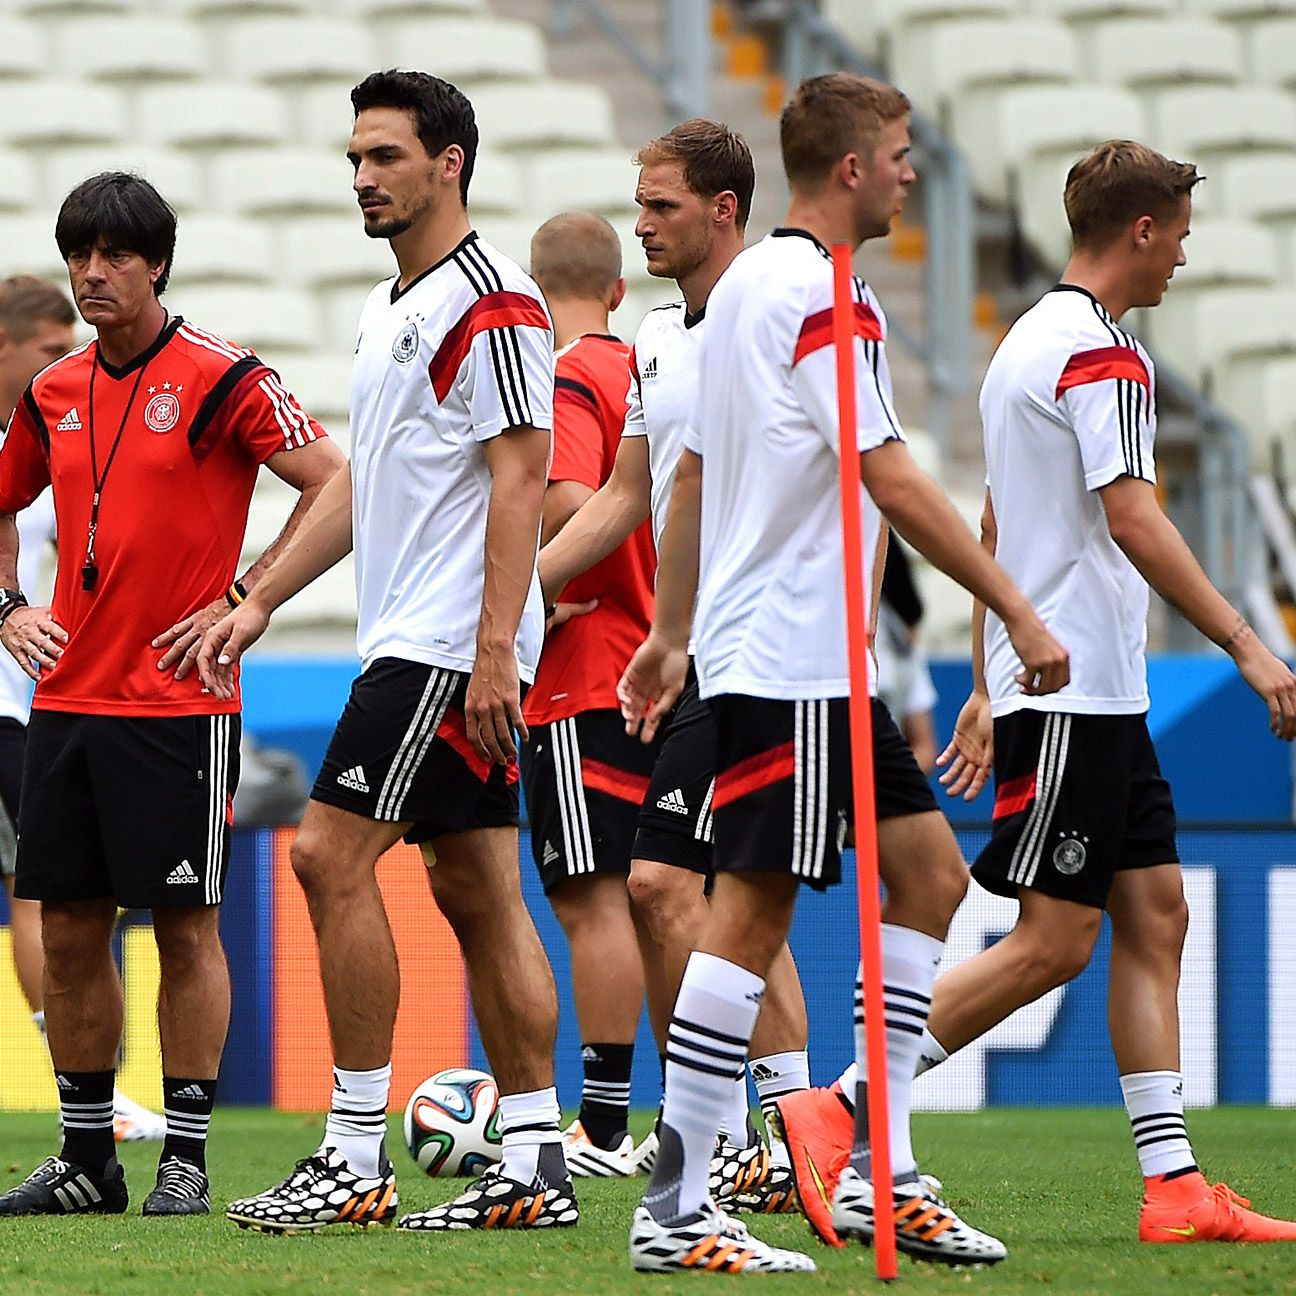 Joachim Loew's side are comfortable in Brazil but facing Ghana is pulling them out into the unknown.